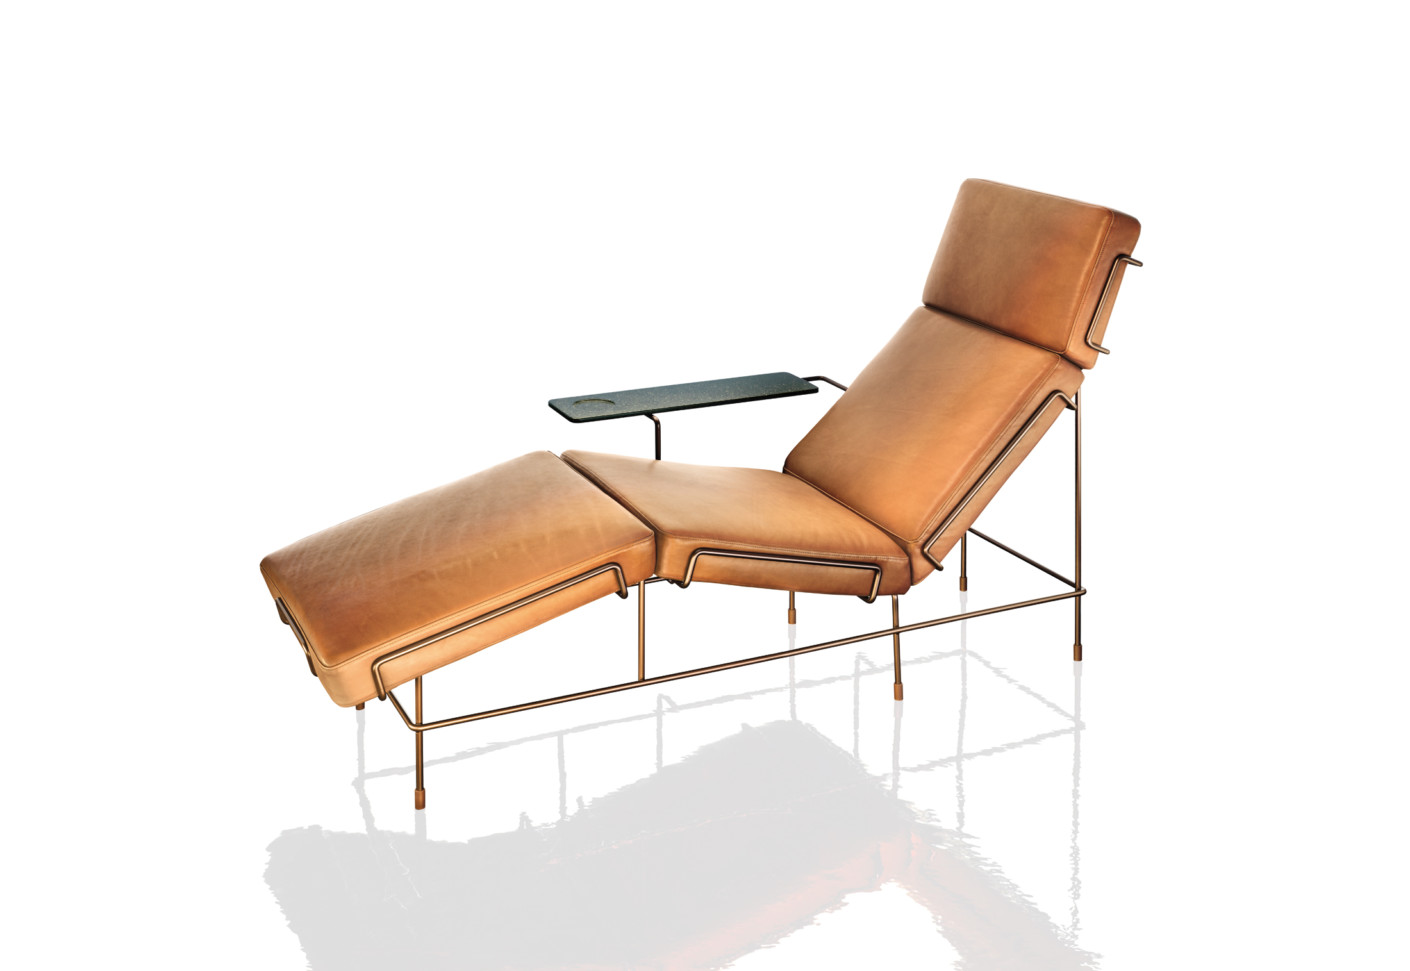 Traffic chaise longue by magis stylepark for Chaise longue pliante plage